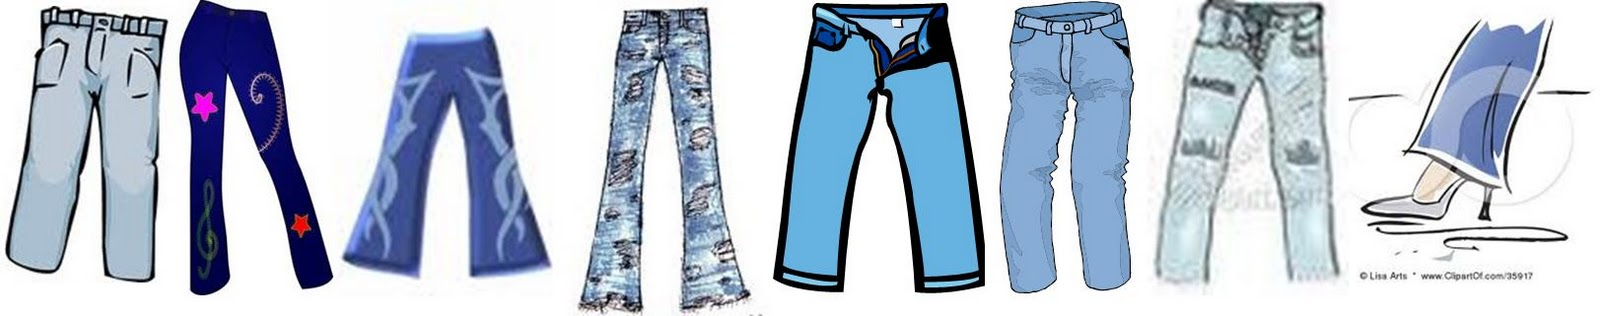 clipart jeans day - photo #12